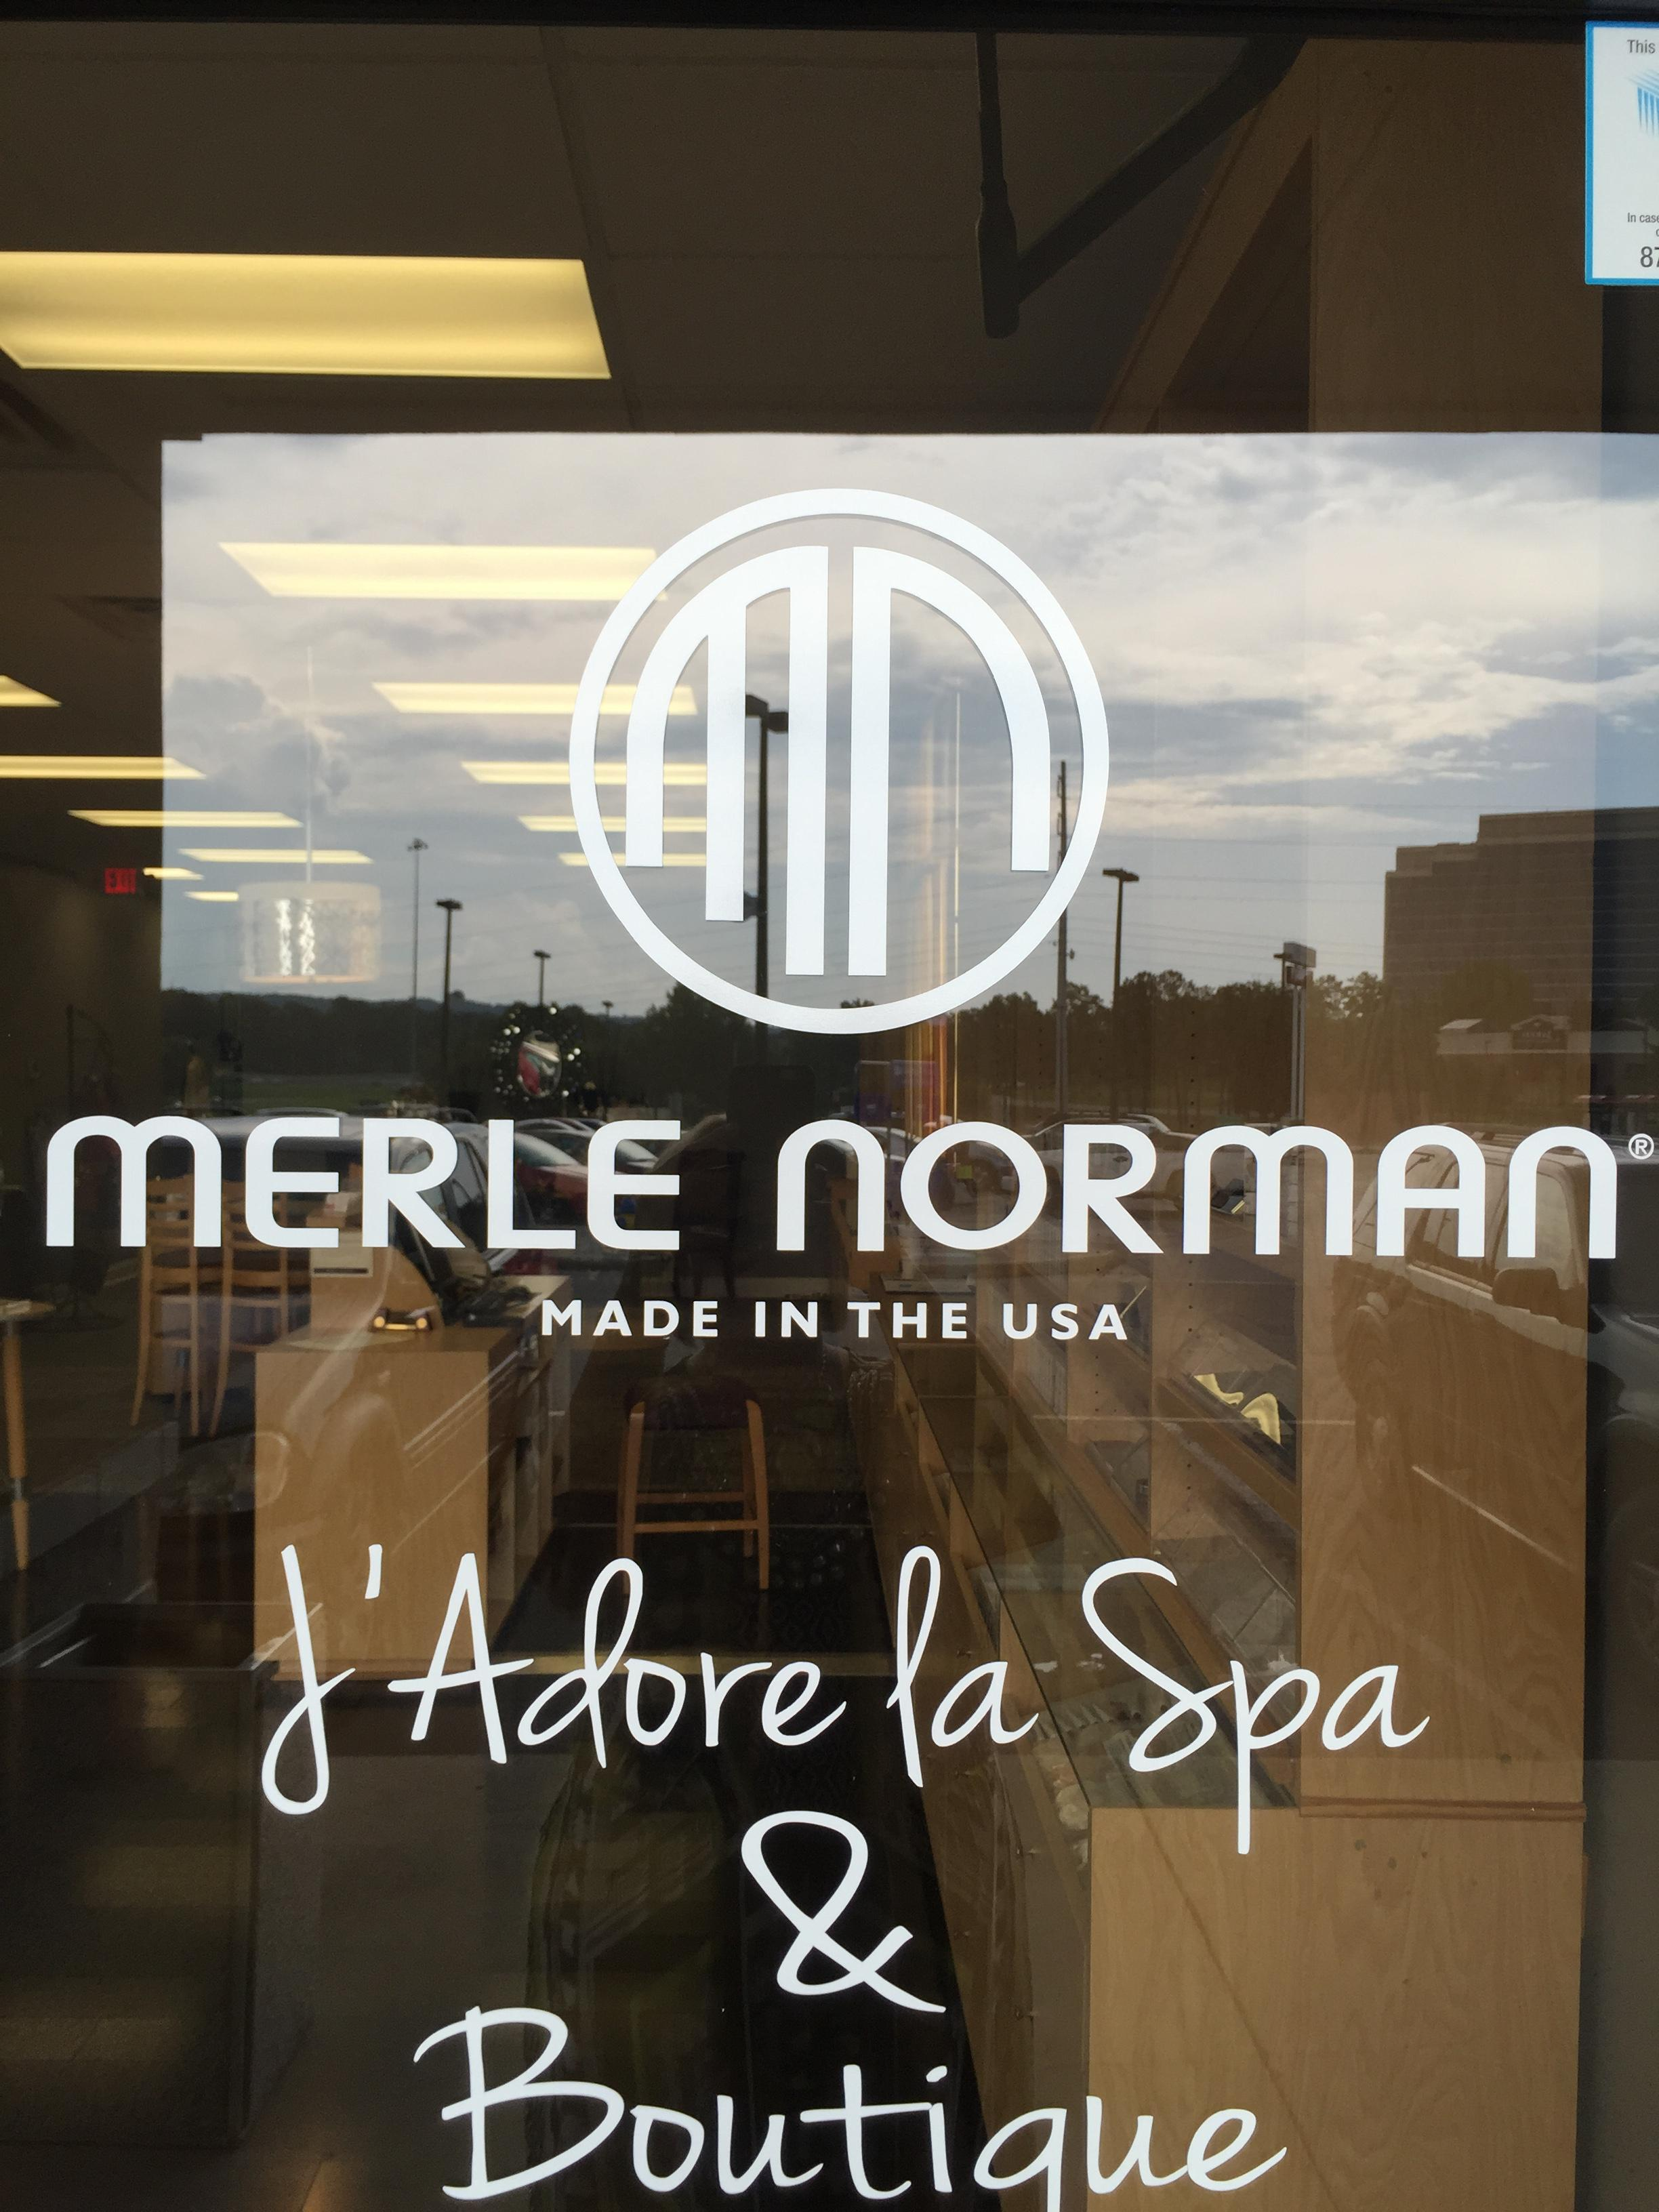 Merle norman coupons